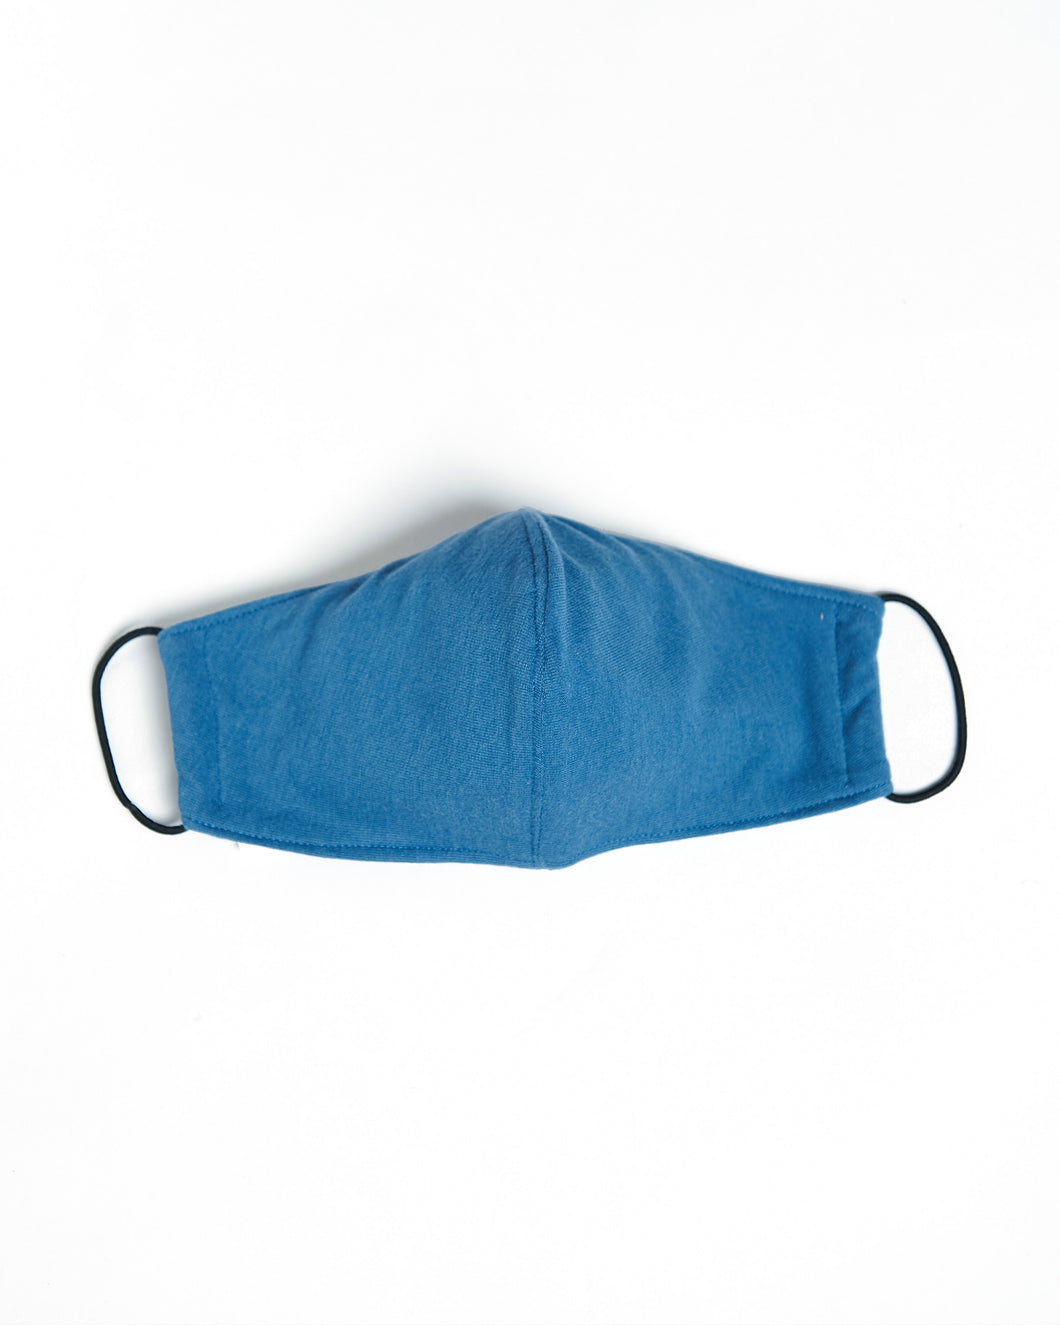 Filter This Nose Blanket - Slate Blue